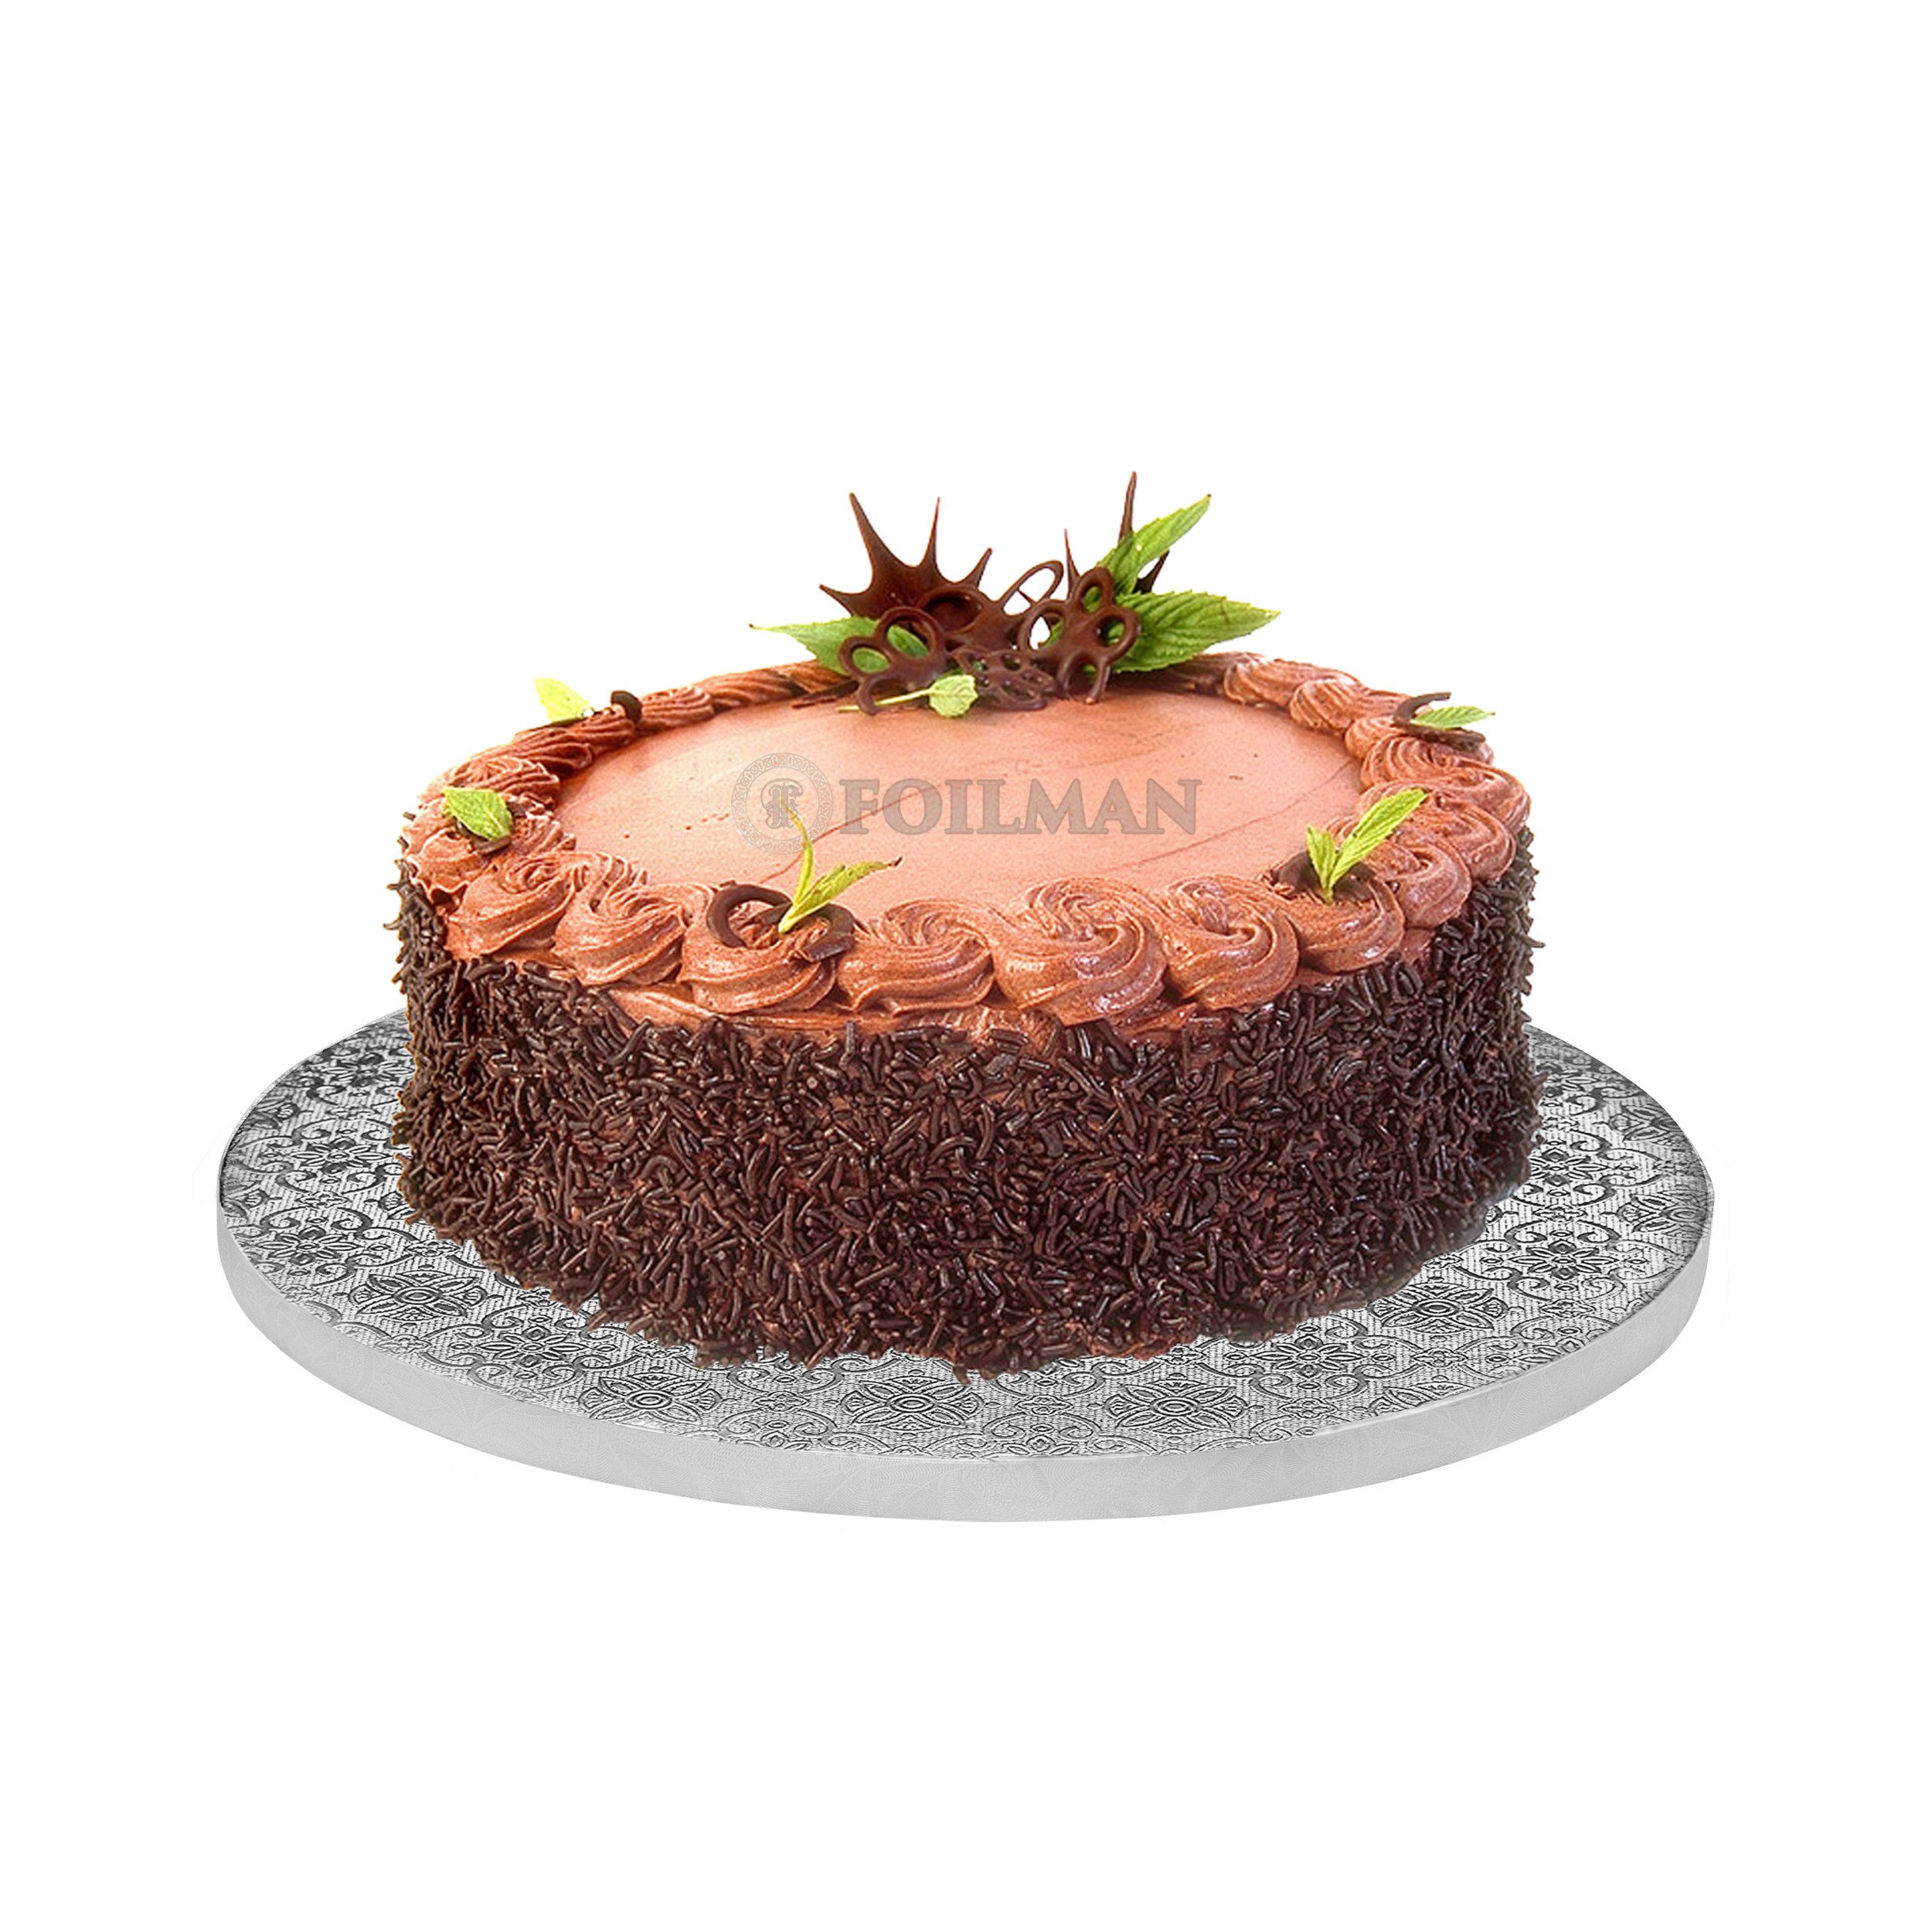 12'' Inch Round Drum Cake Boards for Decorating Cakes ½ Inch Thick - with Coated With Square Flower Embossed Foil - Covers Top & Sides of Bakes - Sturdy, Elegant Boards (Pack of 12)